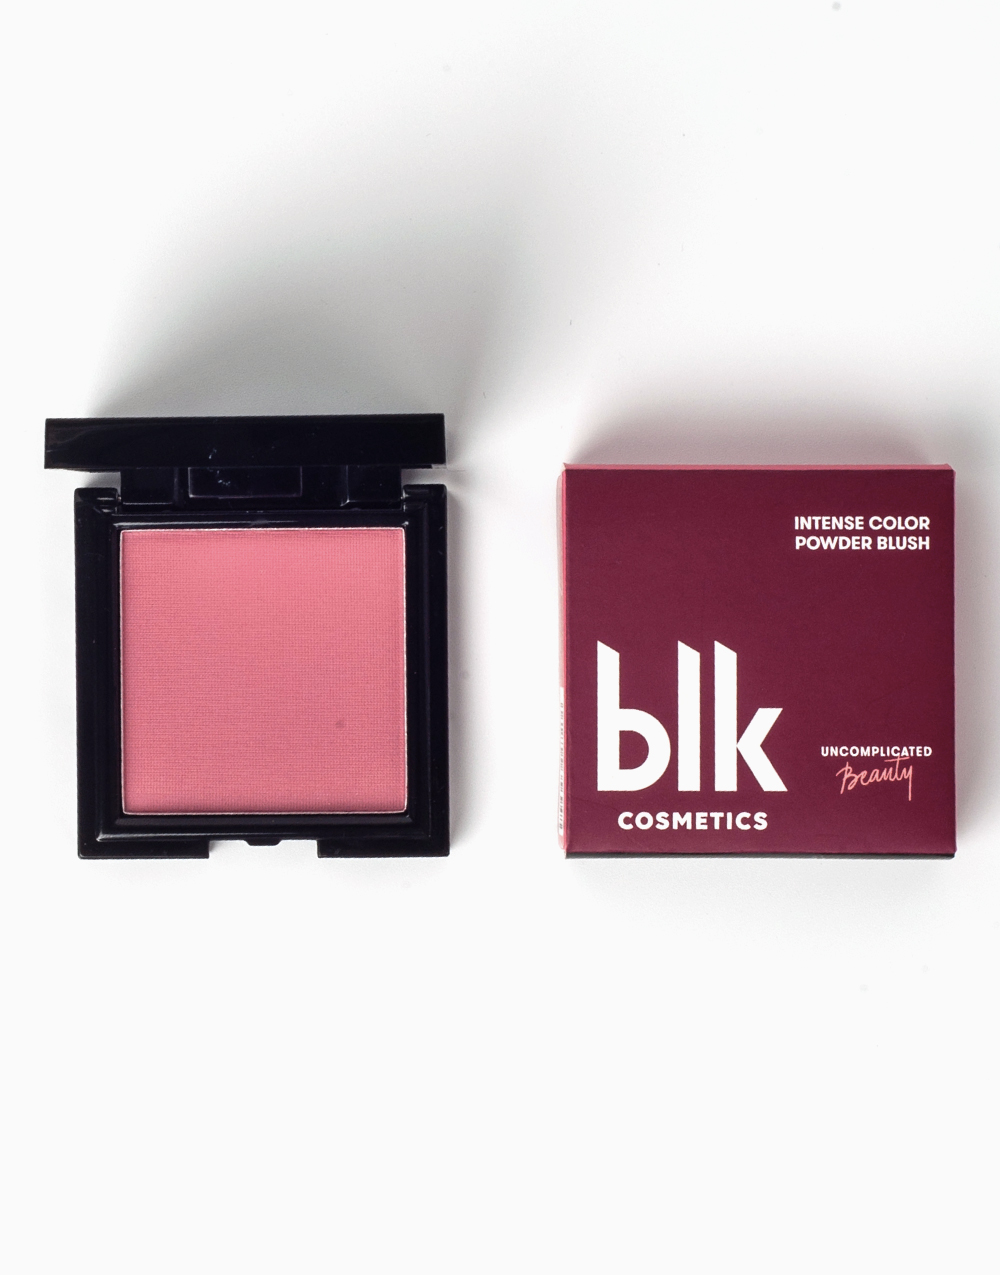 Intense Color Powder Blush in Pinched by BLK Cosmetics